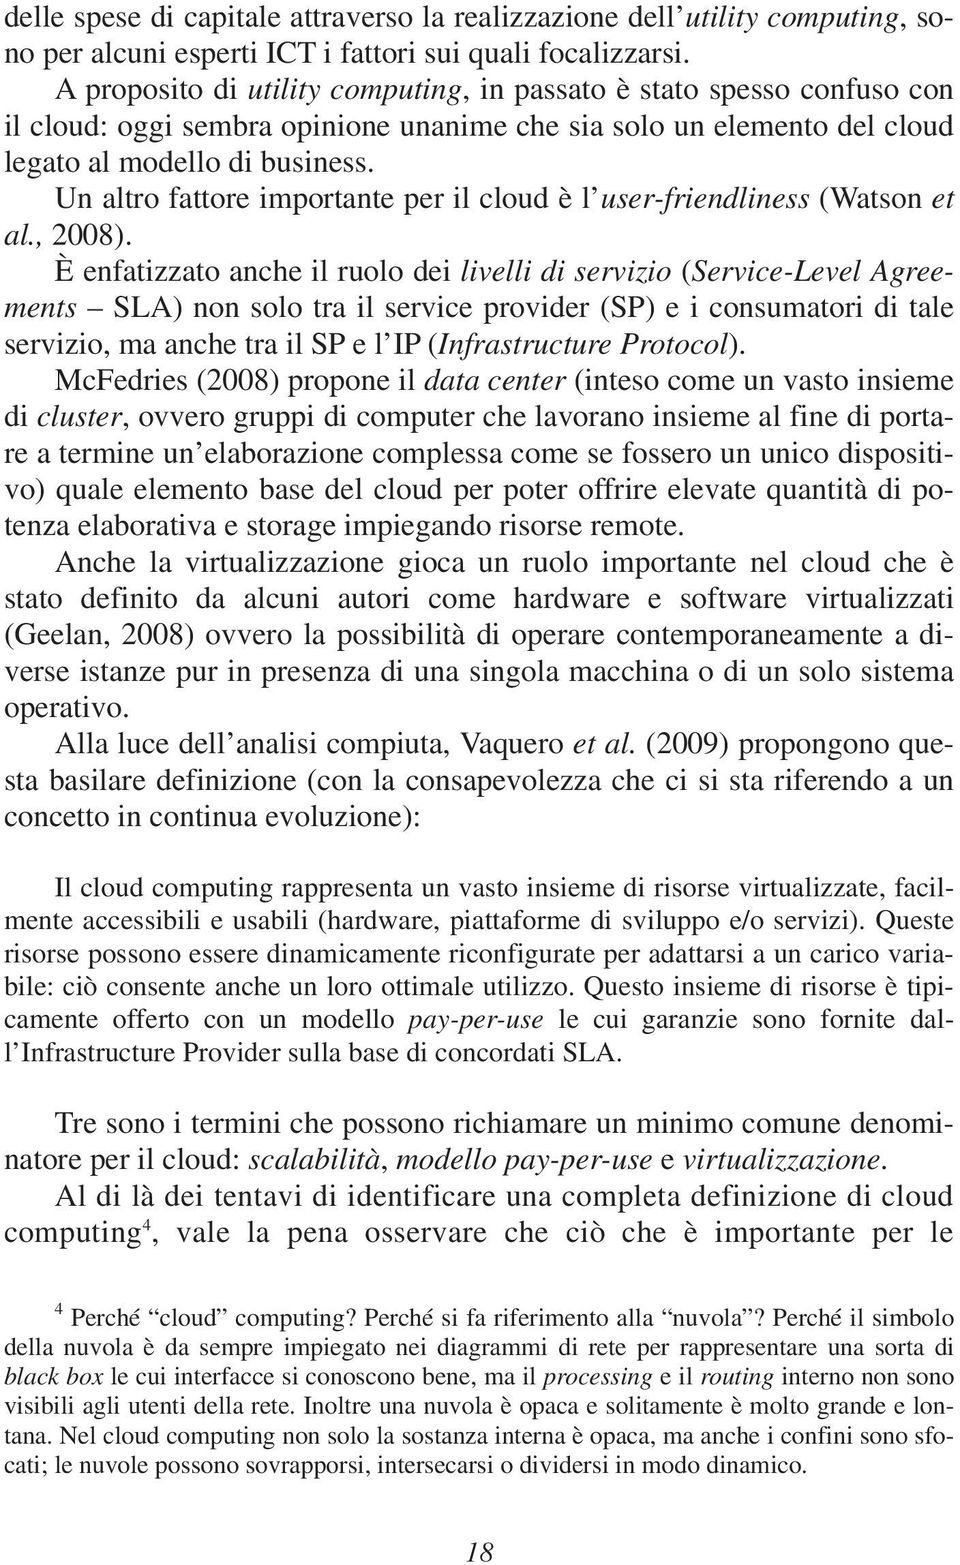 Un altro fattore importante per il cloud è l user-friendliness (Watson et al., 2008).